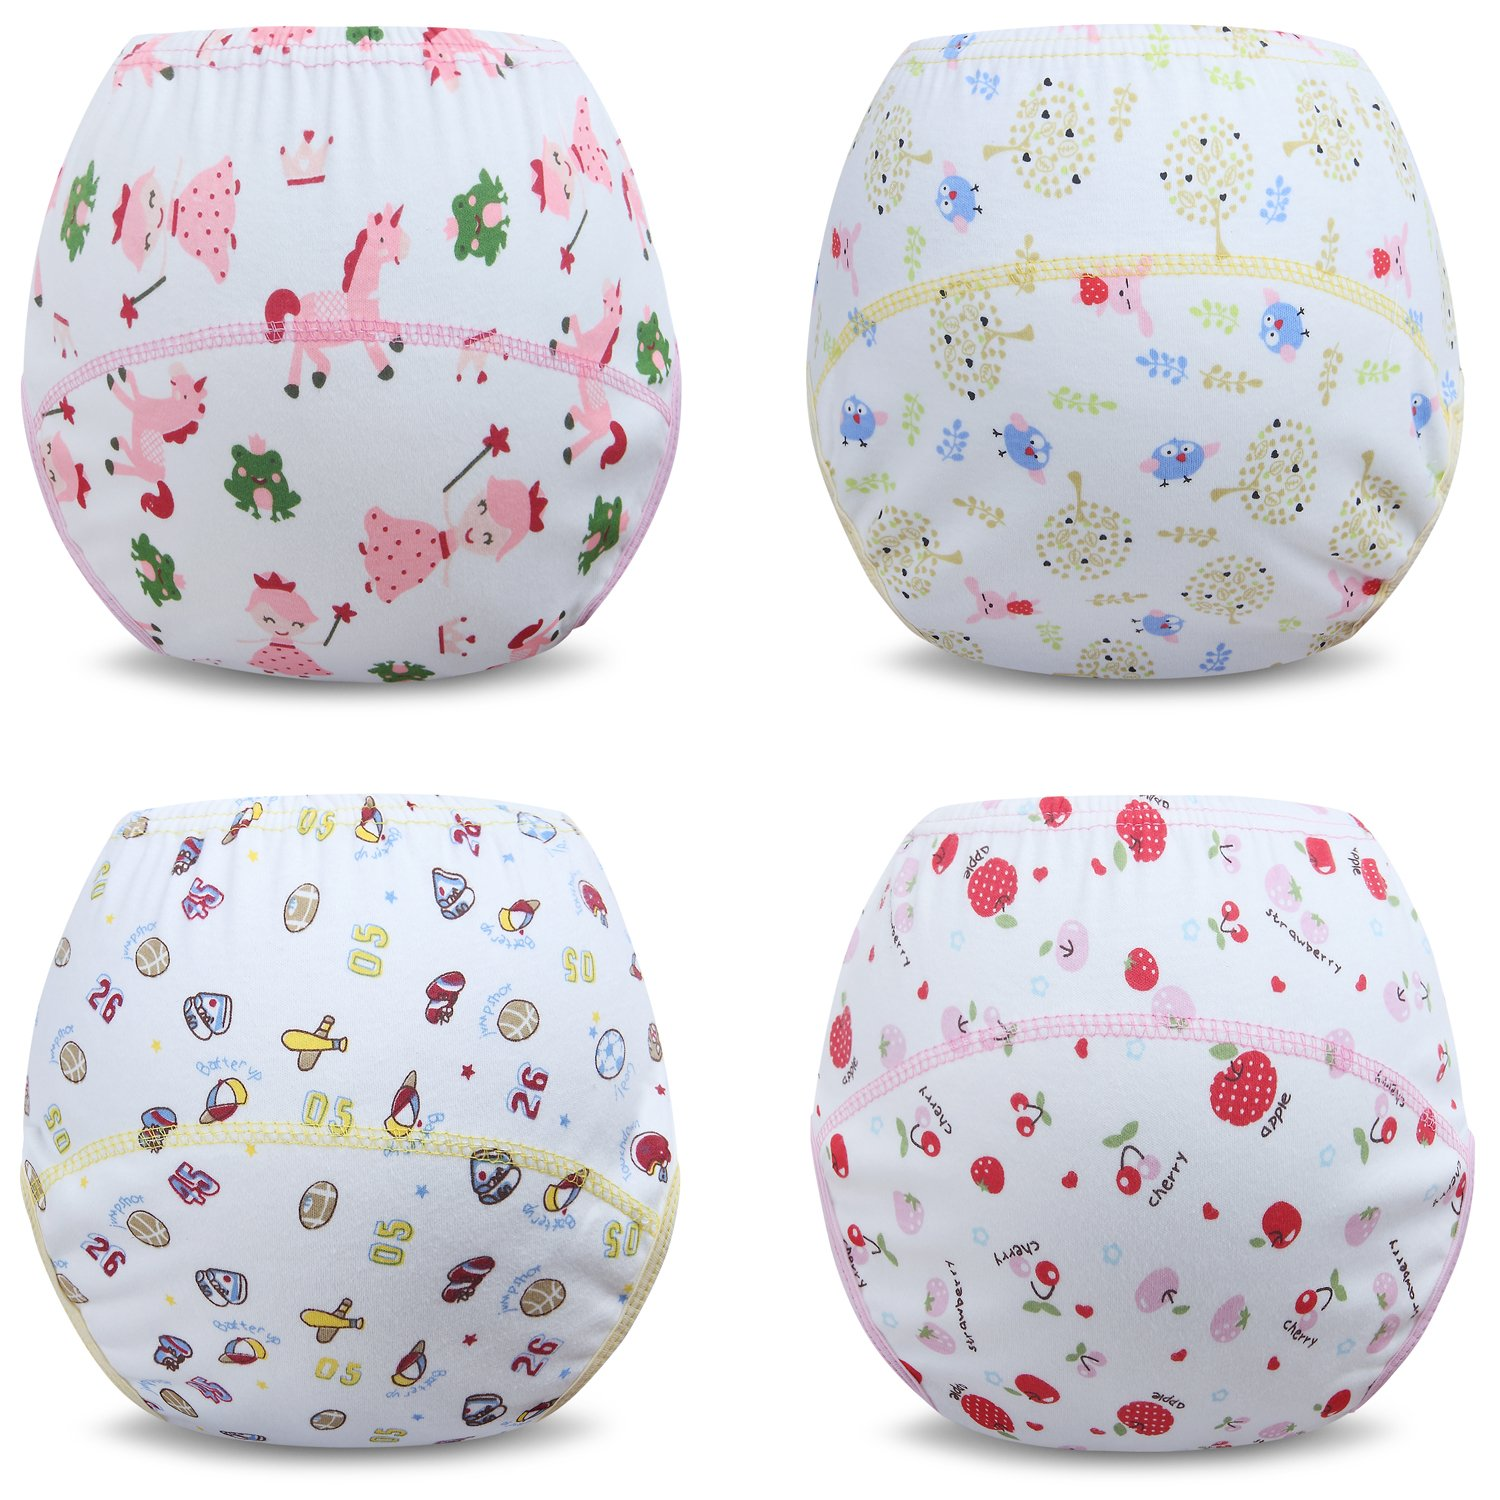 Ateid Toddlers Baby Girls' Reusable Potty Training Pants Cotton Pack of 4